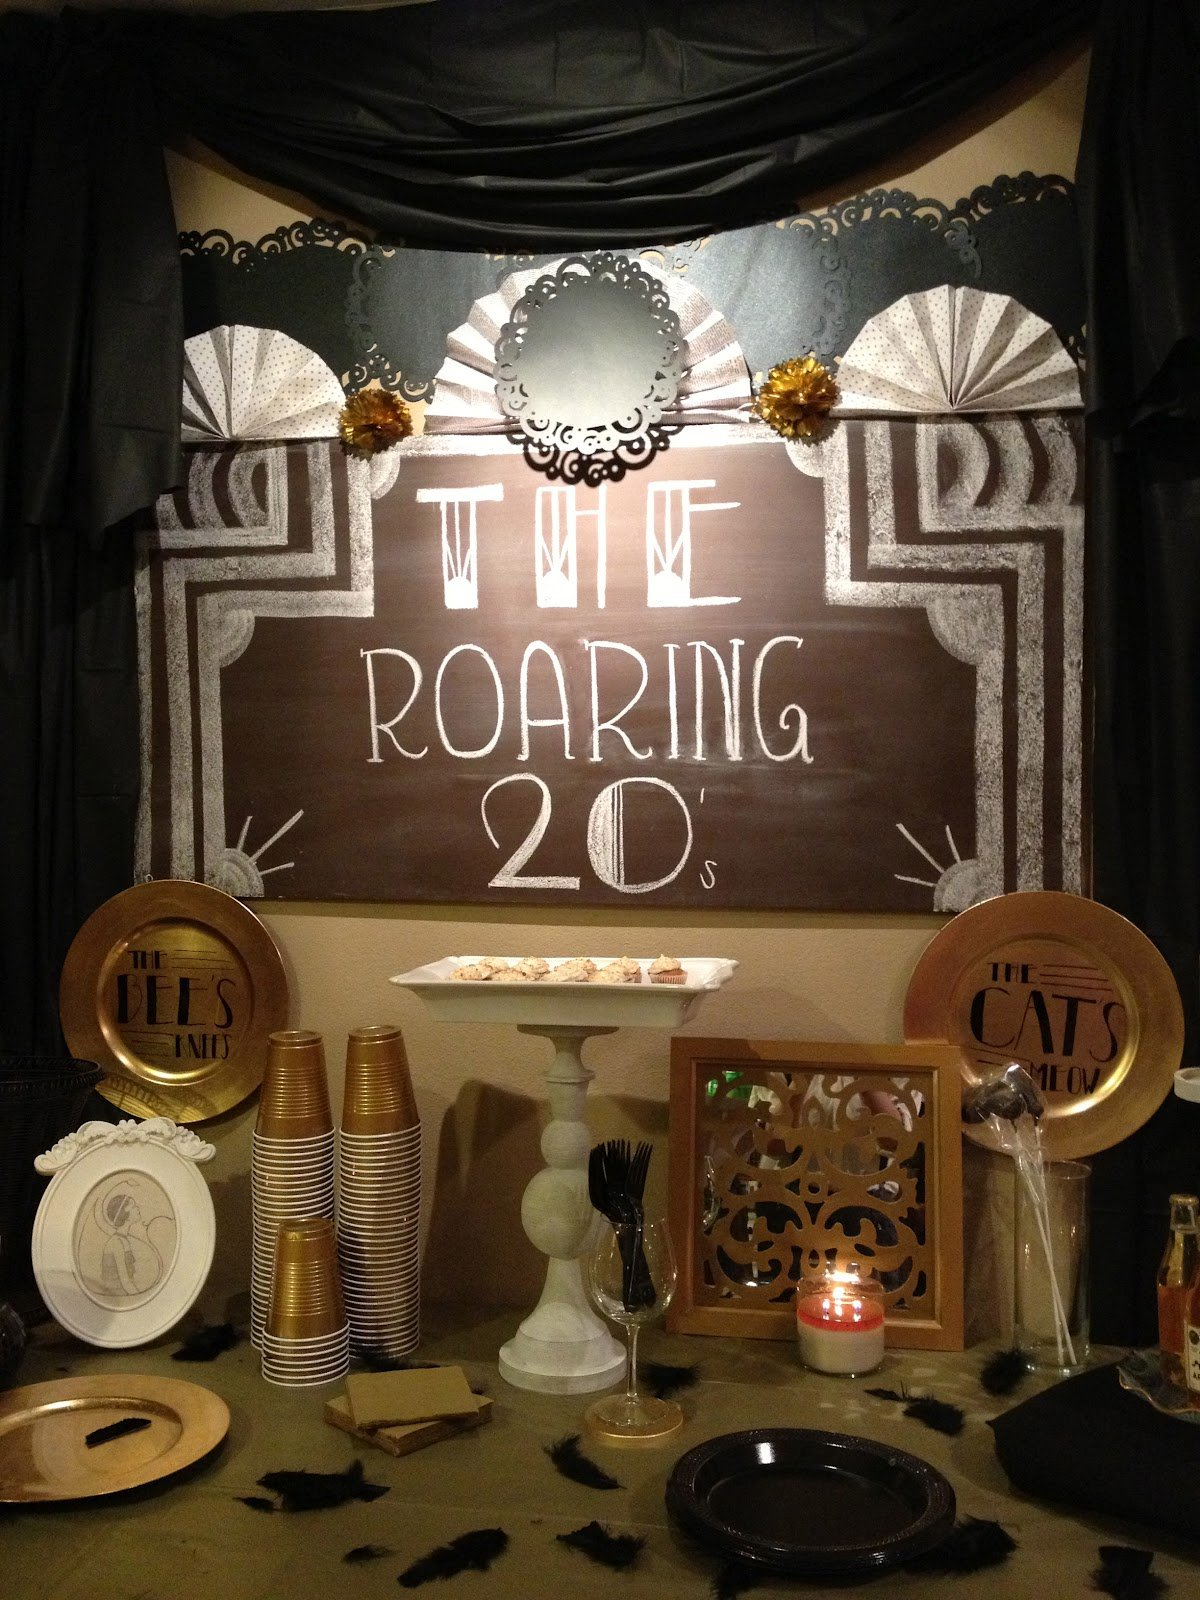 Roaring 20 s party quotes quotesgram for 1920s decoration party